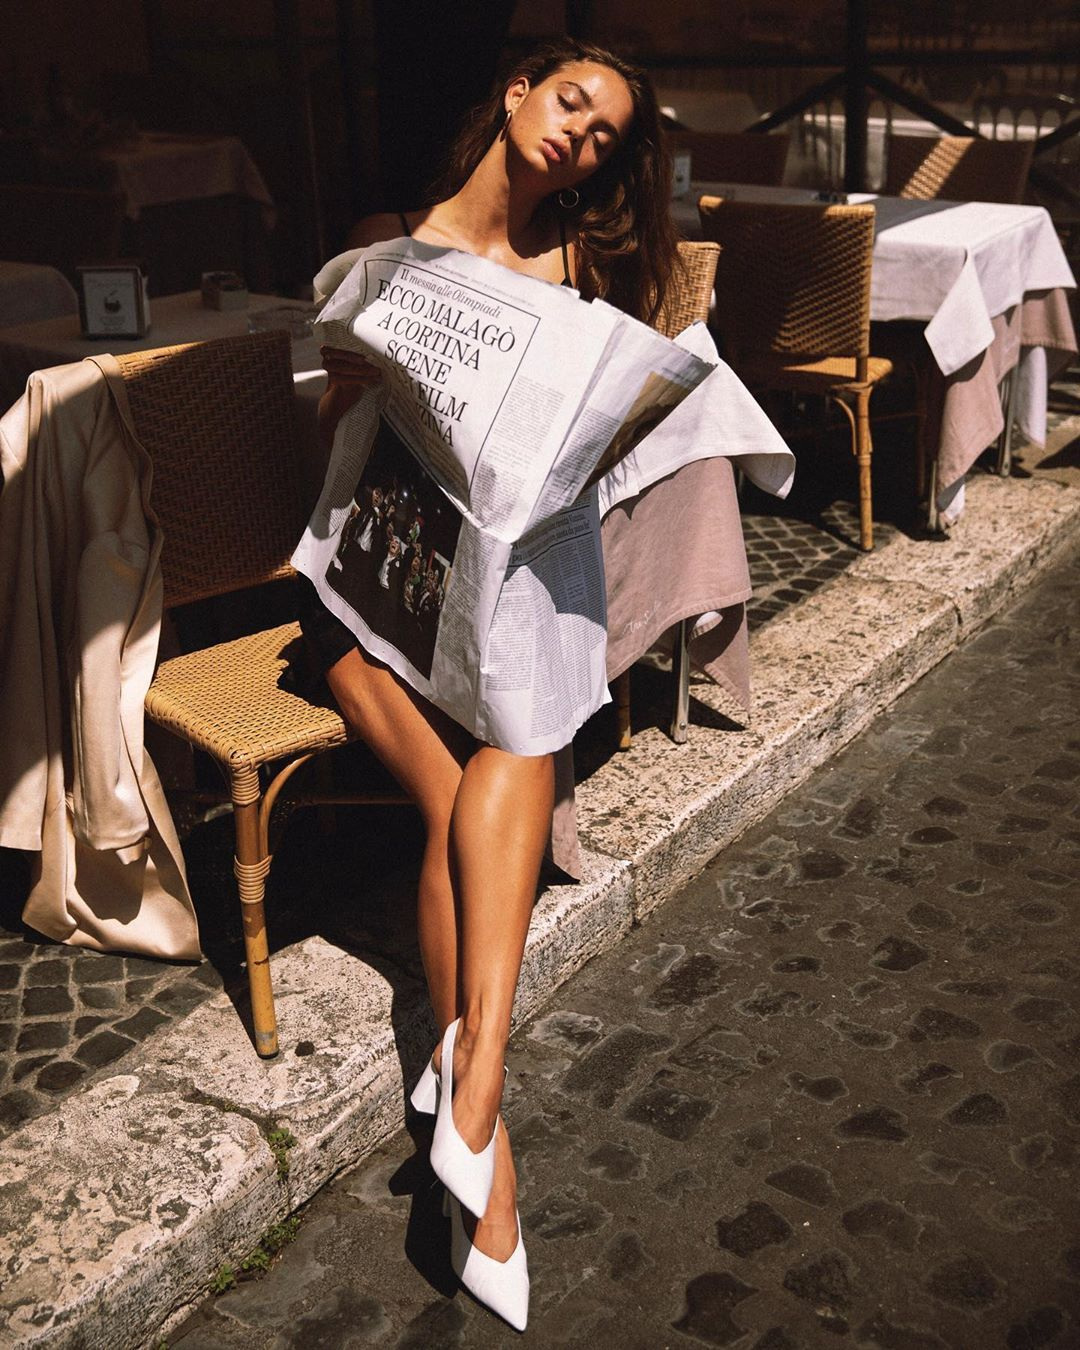 Amberly Valentine On Instagram Inks In Rome Photographer Travel Inkawilliams Italy Coffee Rome Photo Photo Fashion Photography